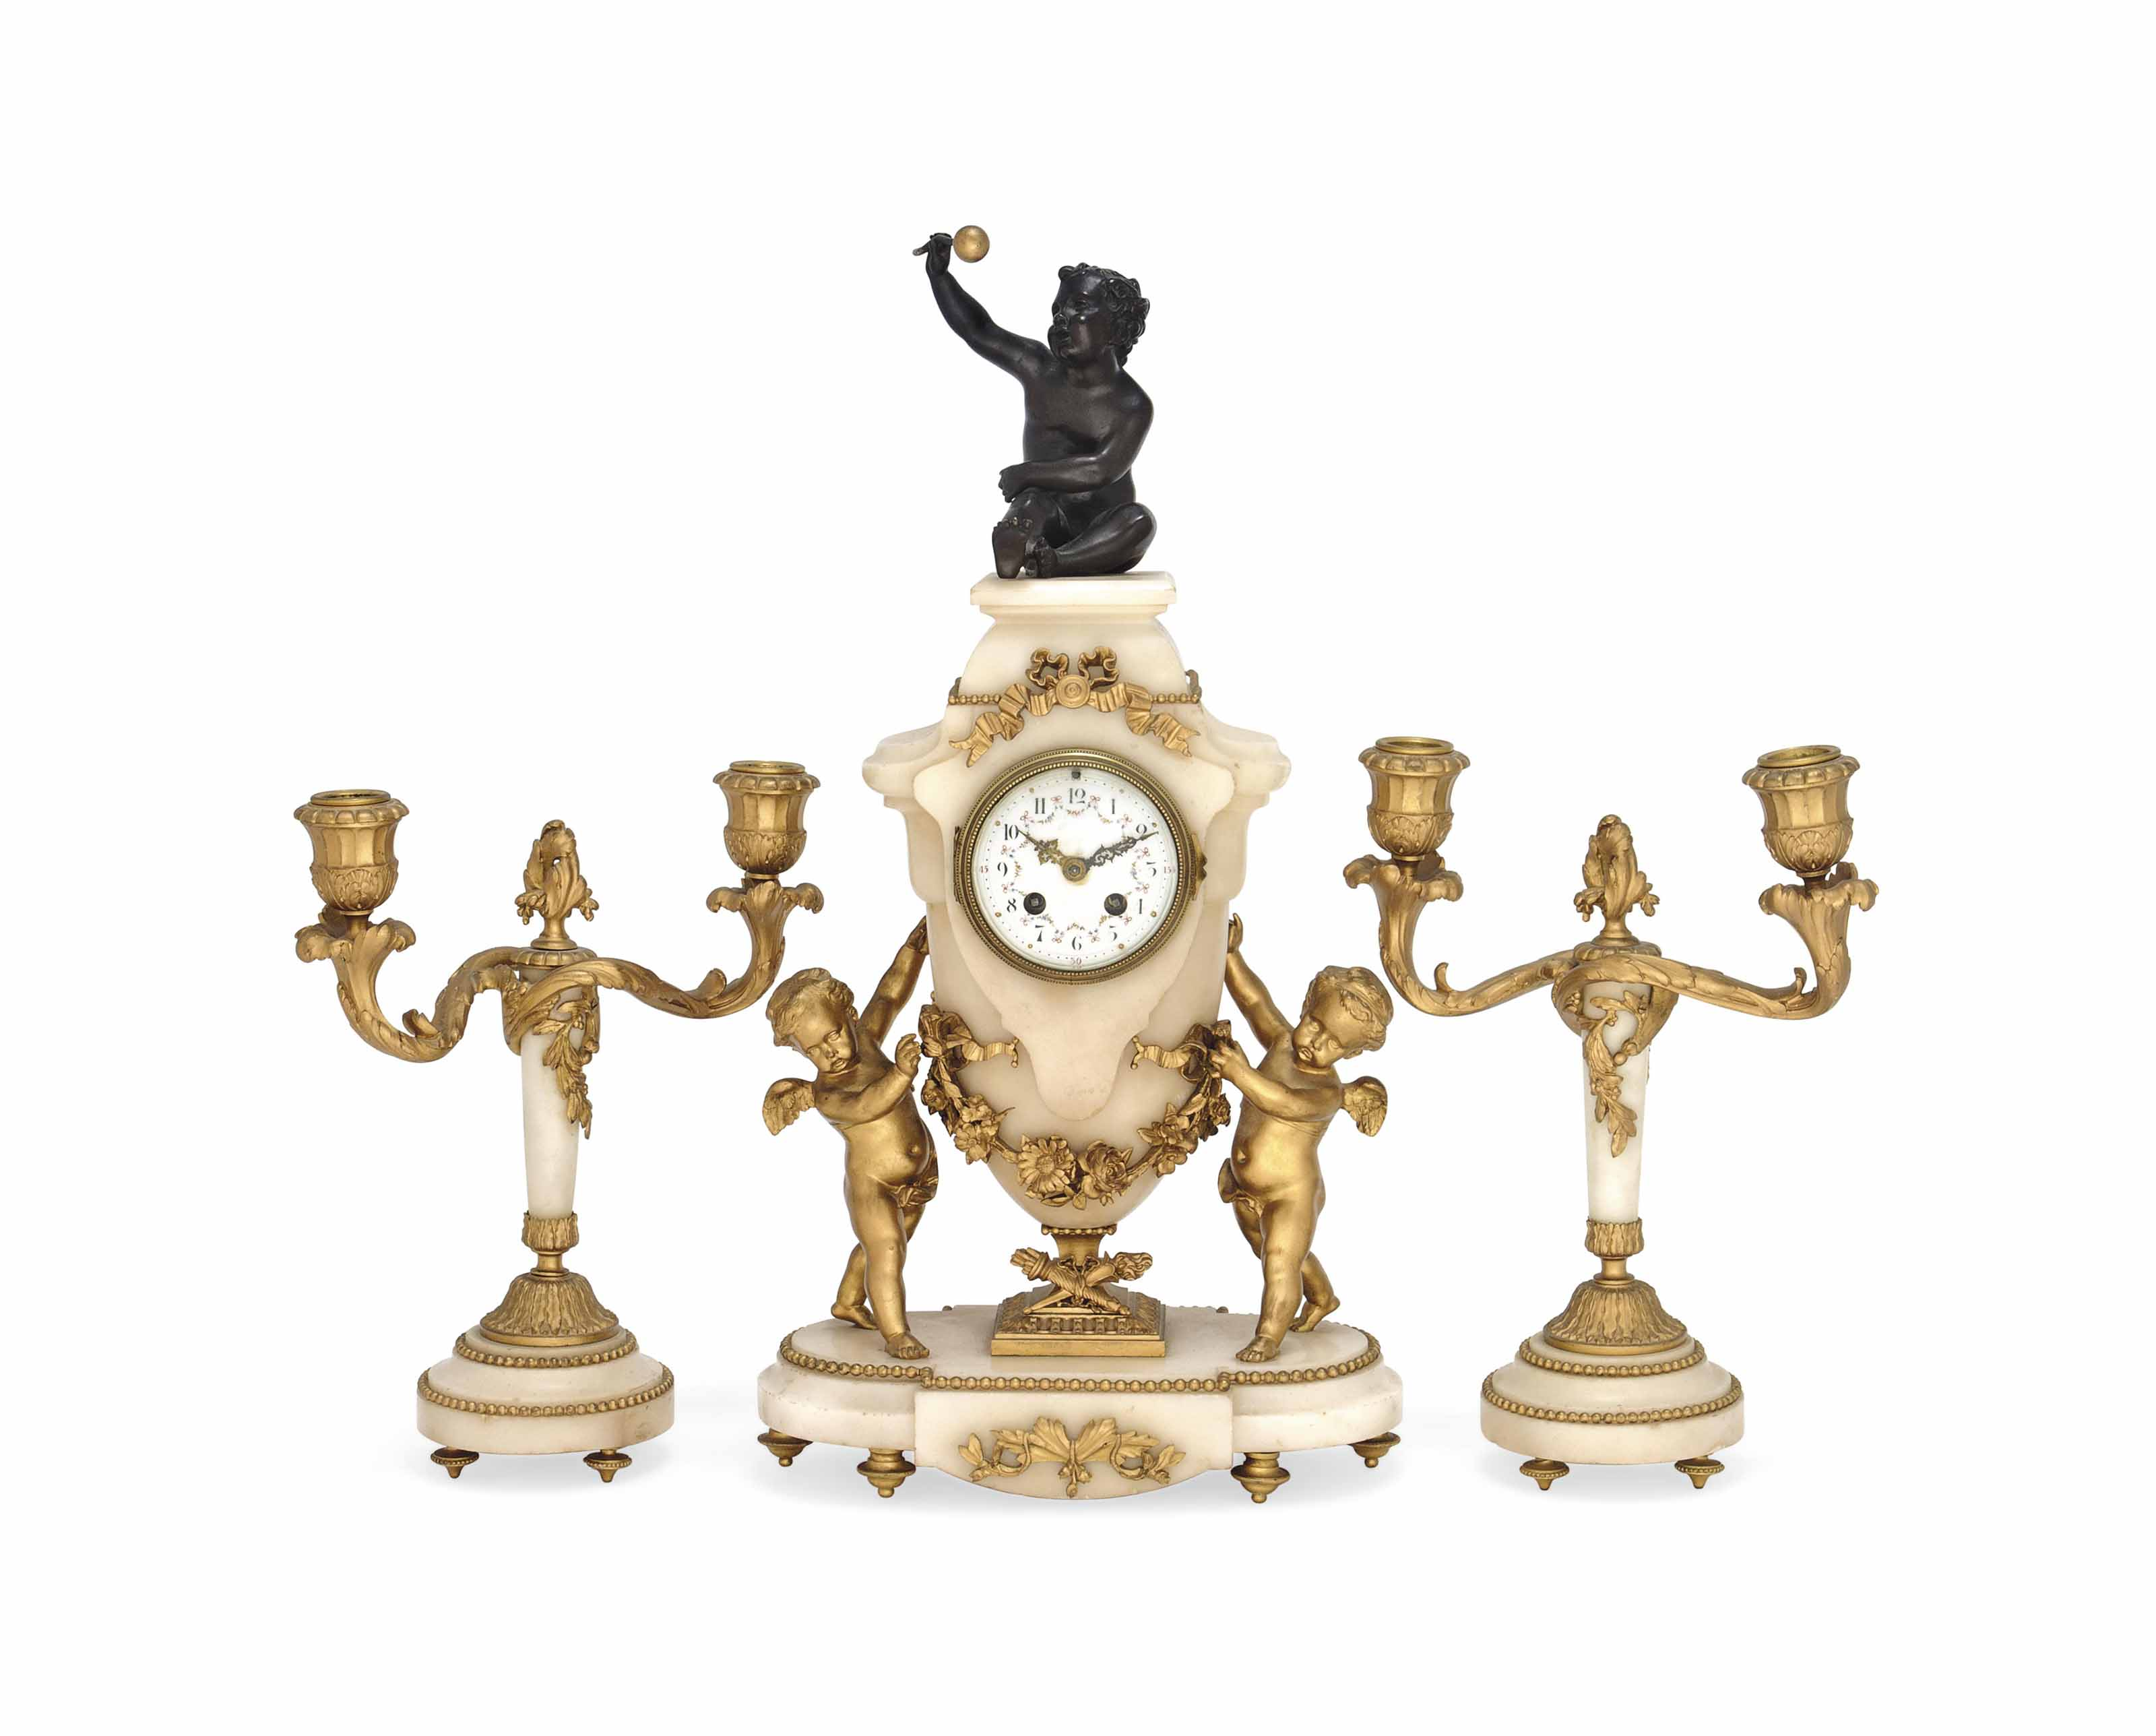 A FRENCH PATINATED AND GILT-BRONZE AND WHITE-MARBLE CLOCK GARNITURE